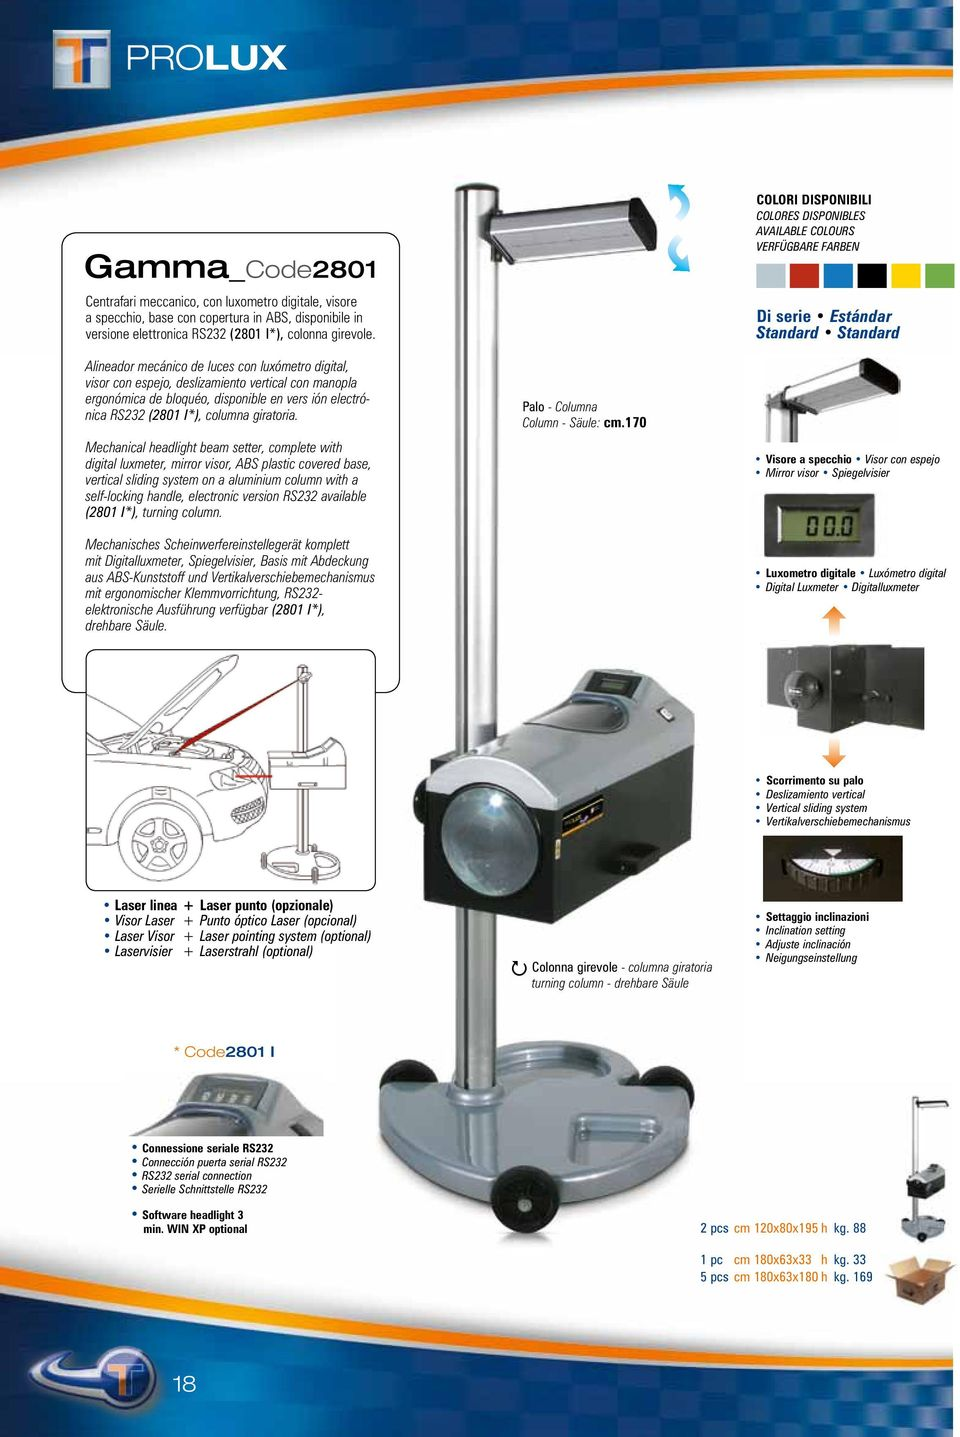 Mechanical headlight beam setter, complete with digital luxmeter, mirror visor, ABS plastic covered base, vertical sliding system on a aluminium column with a self-locking handle, electronic version